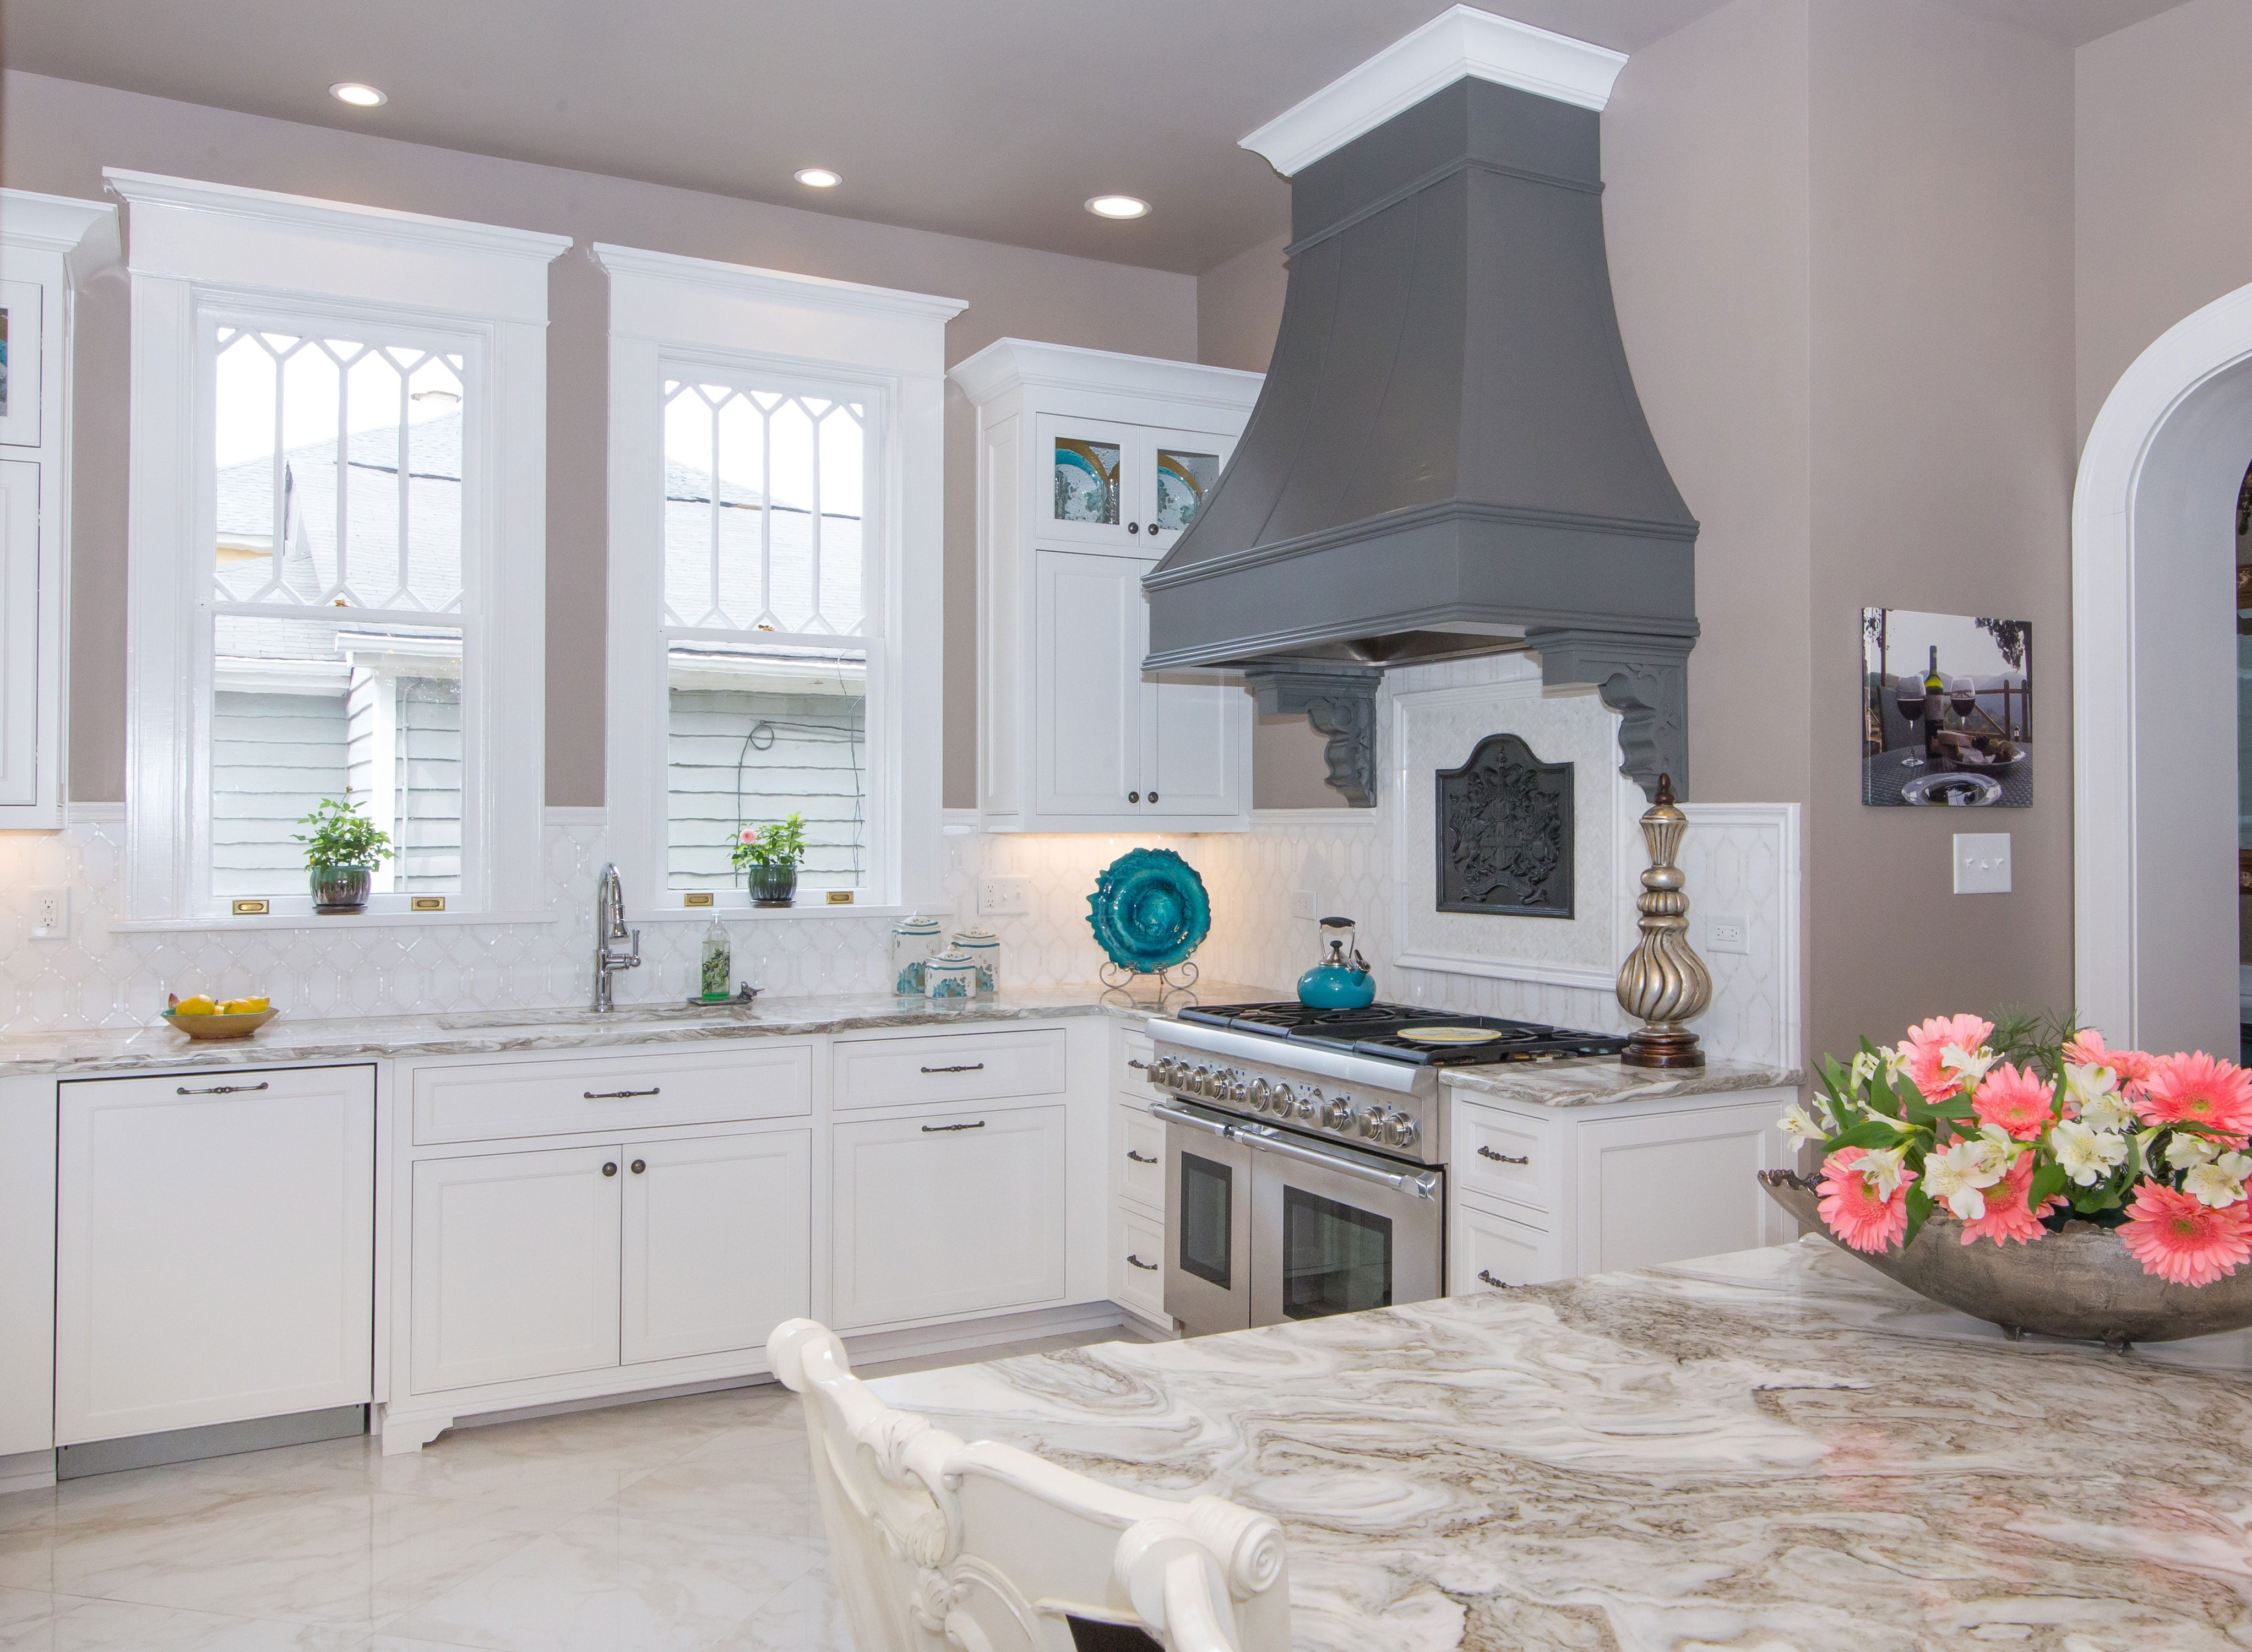 Hood-Backsplash-Kitchen-White-Cabinets-Glass-Doors ...